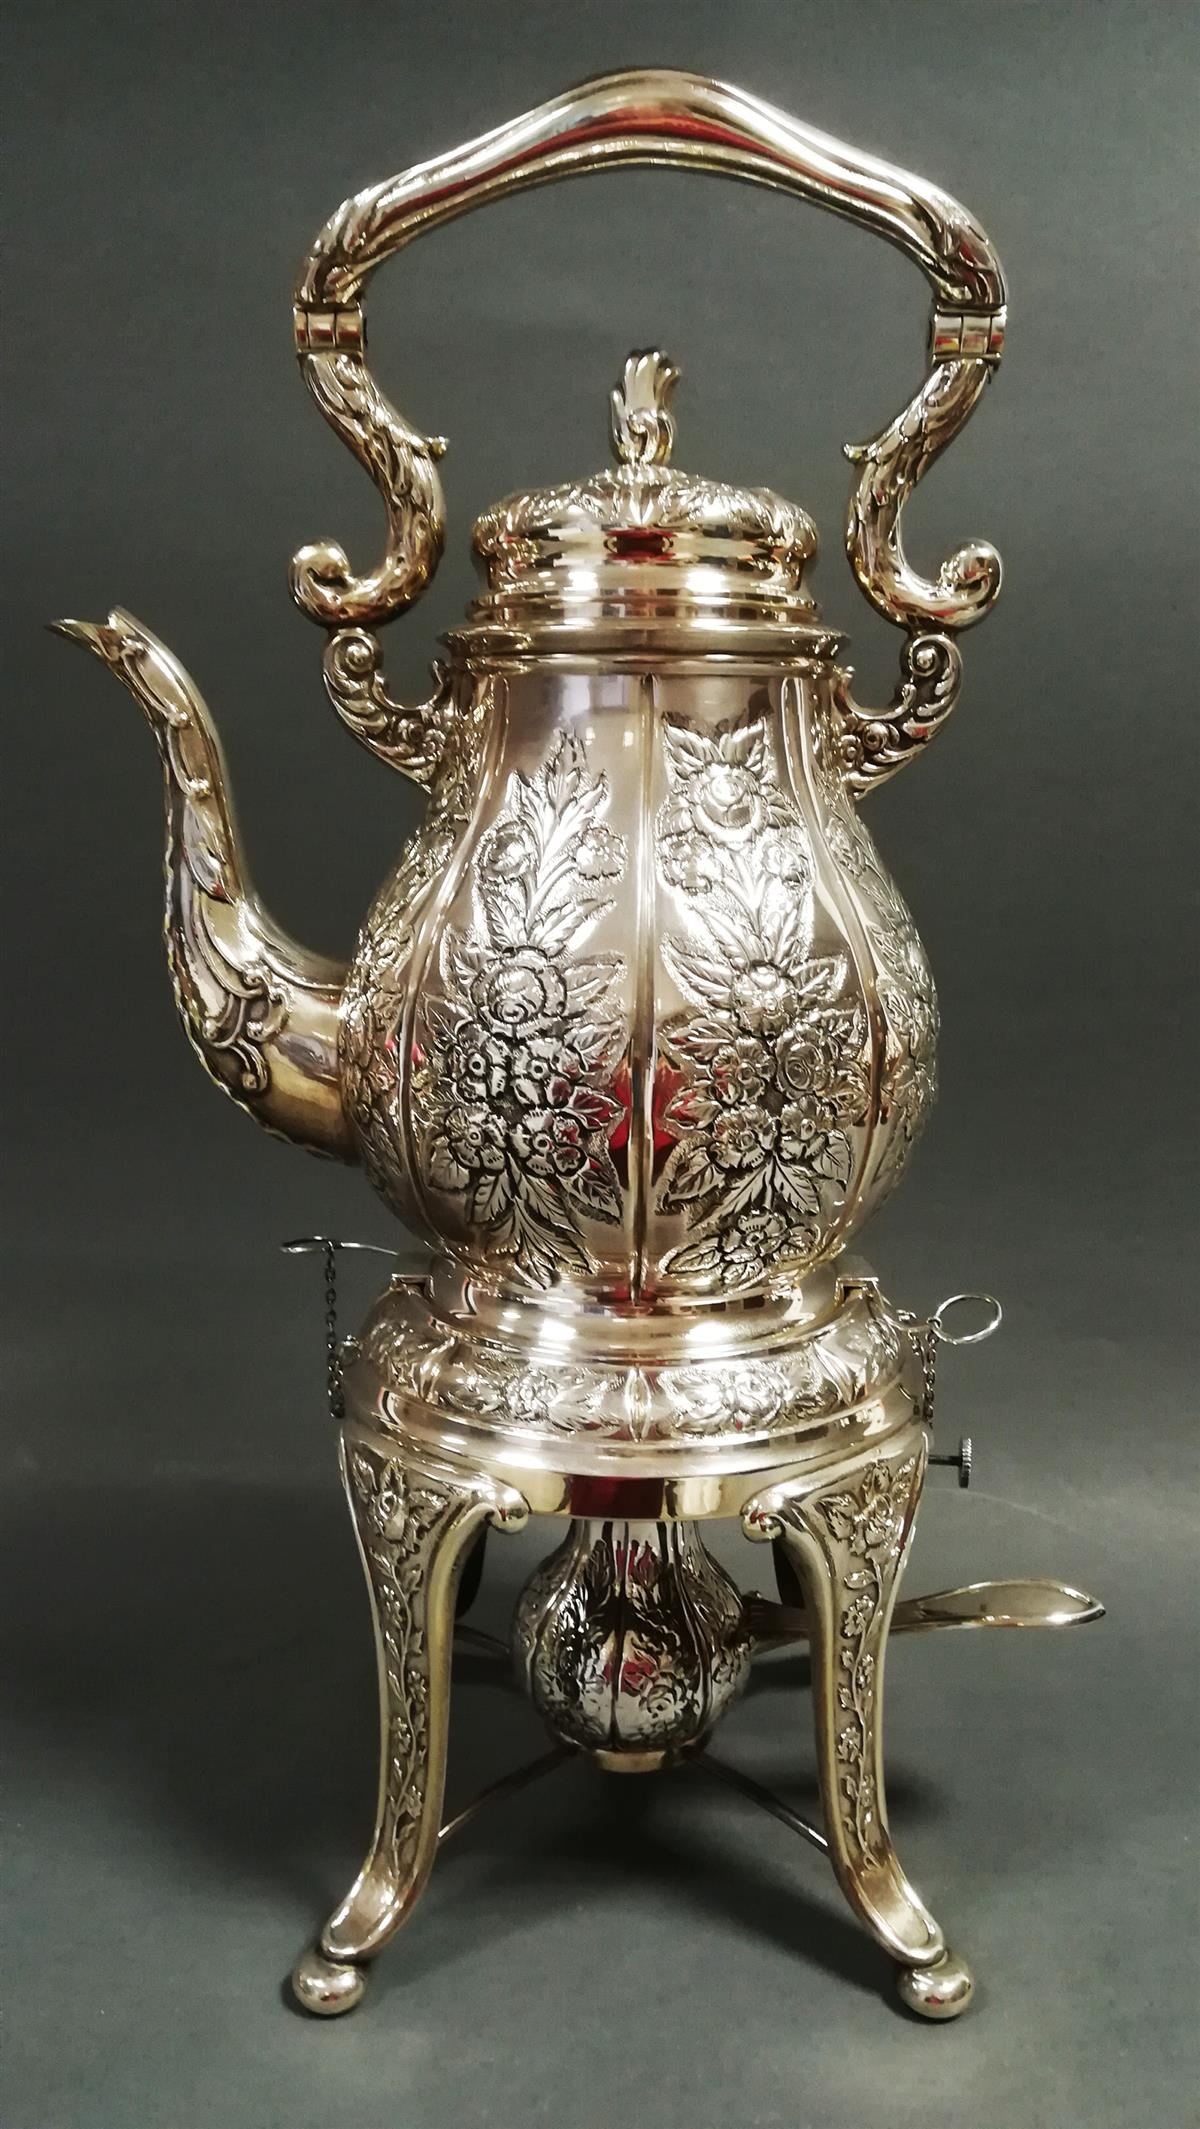 Old silver tea samovar